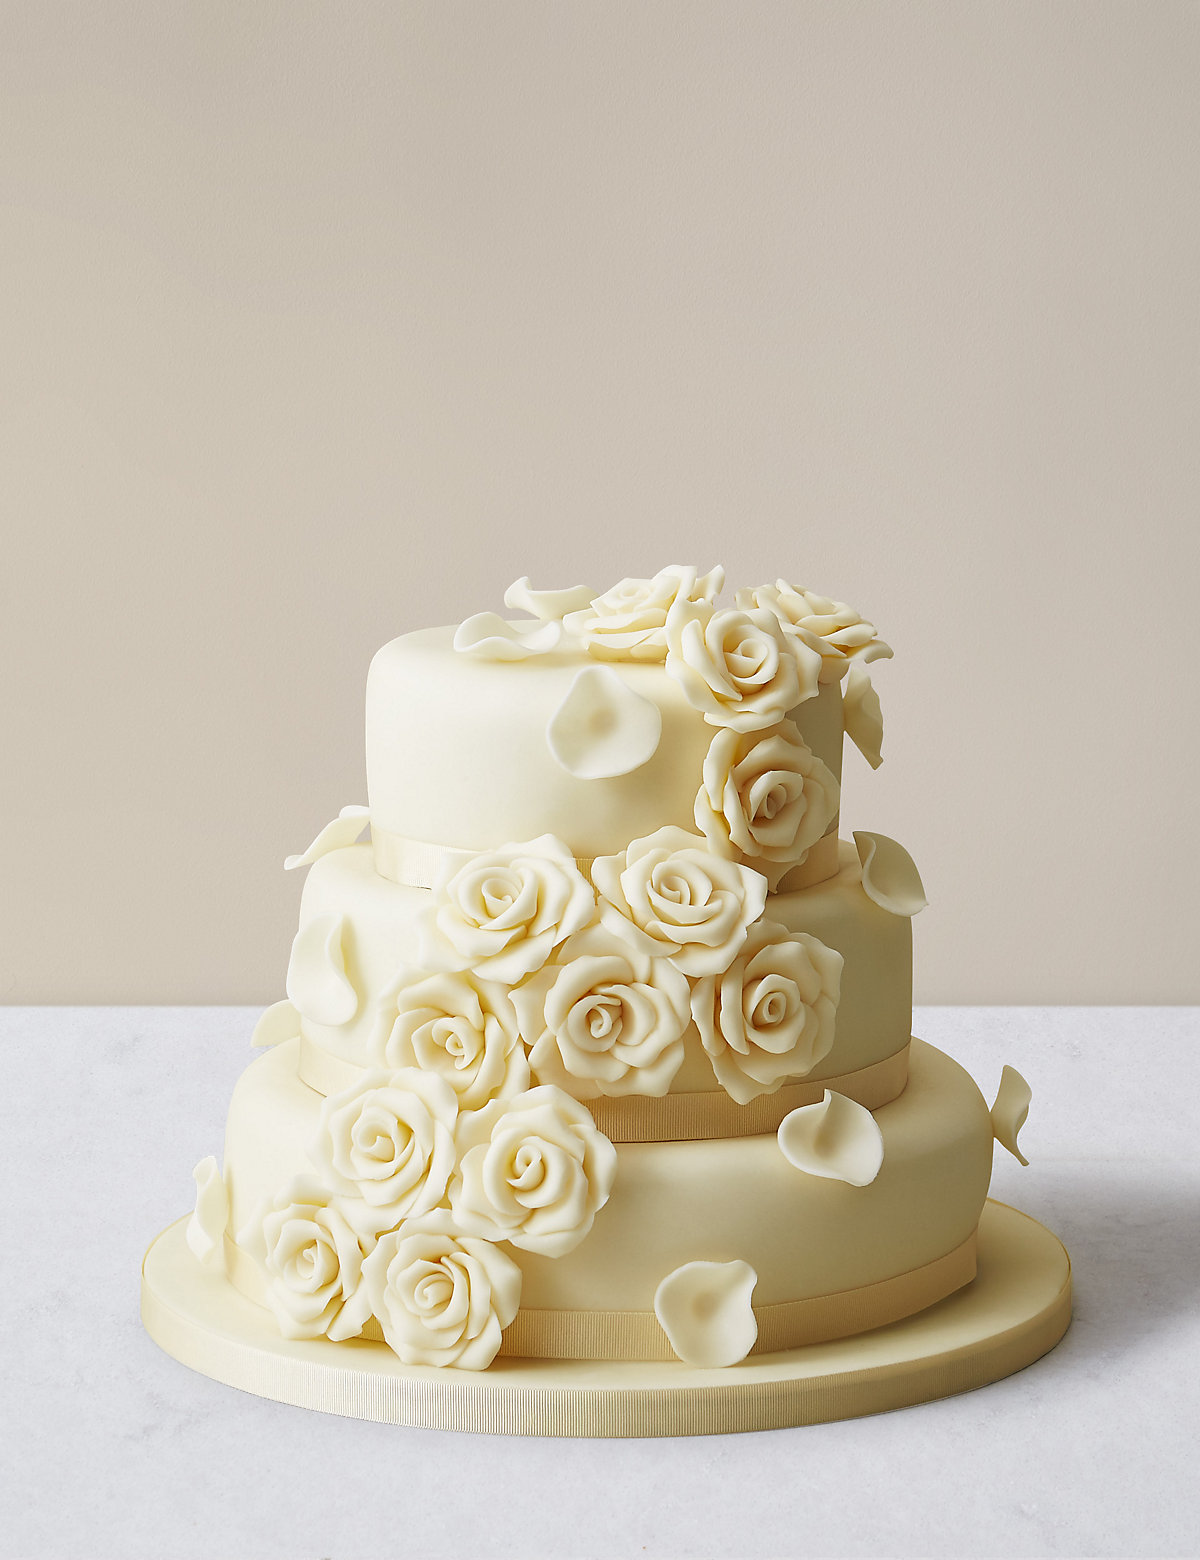 Chocolate Rose Wedding Cake 3 Tier Assorted Cakes White Chocolate Icing